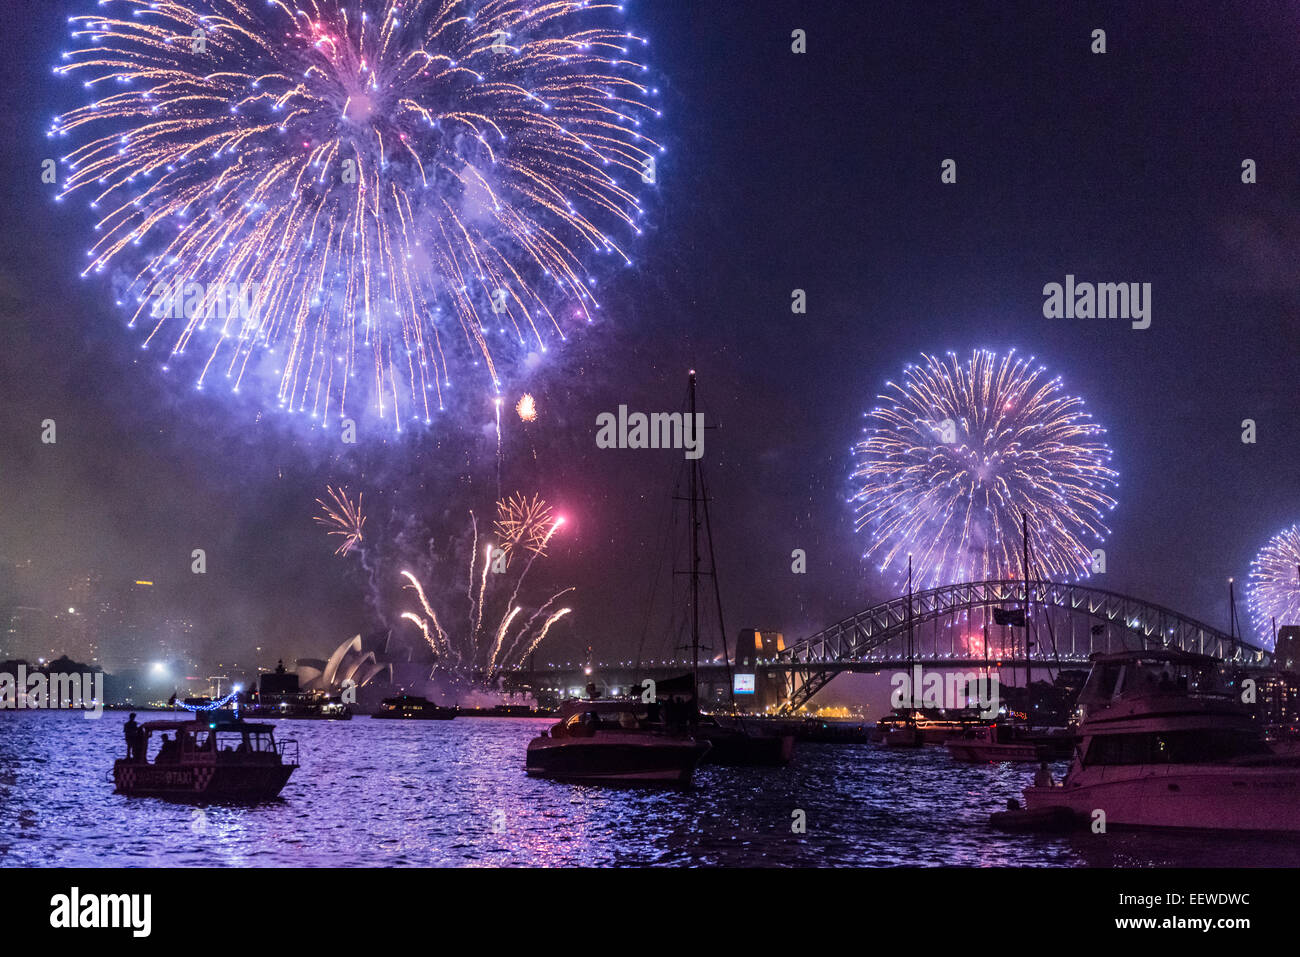 Family Fireworks Display over Sydney Opera House, Harbour Bridge and boats at anchor, New Year's Eve 2014, Sydney - Stock Image